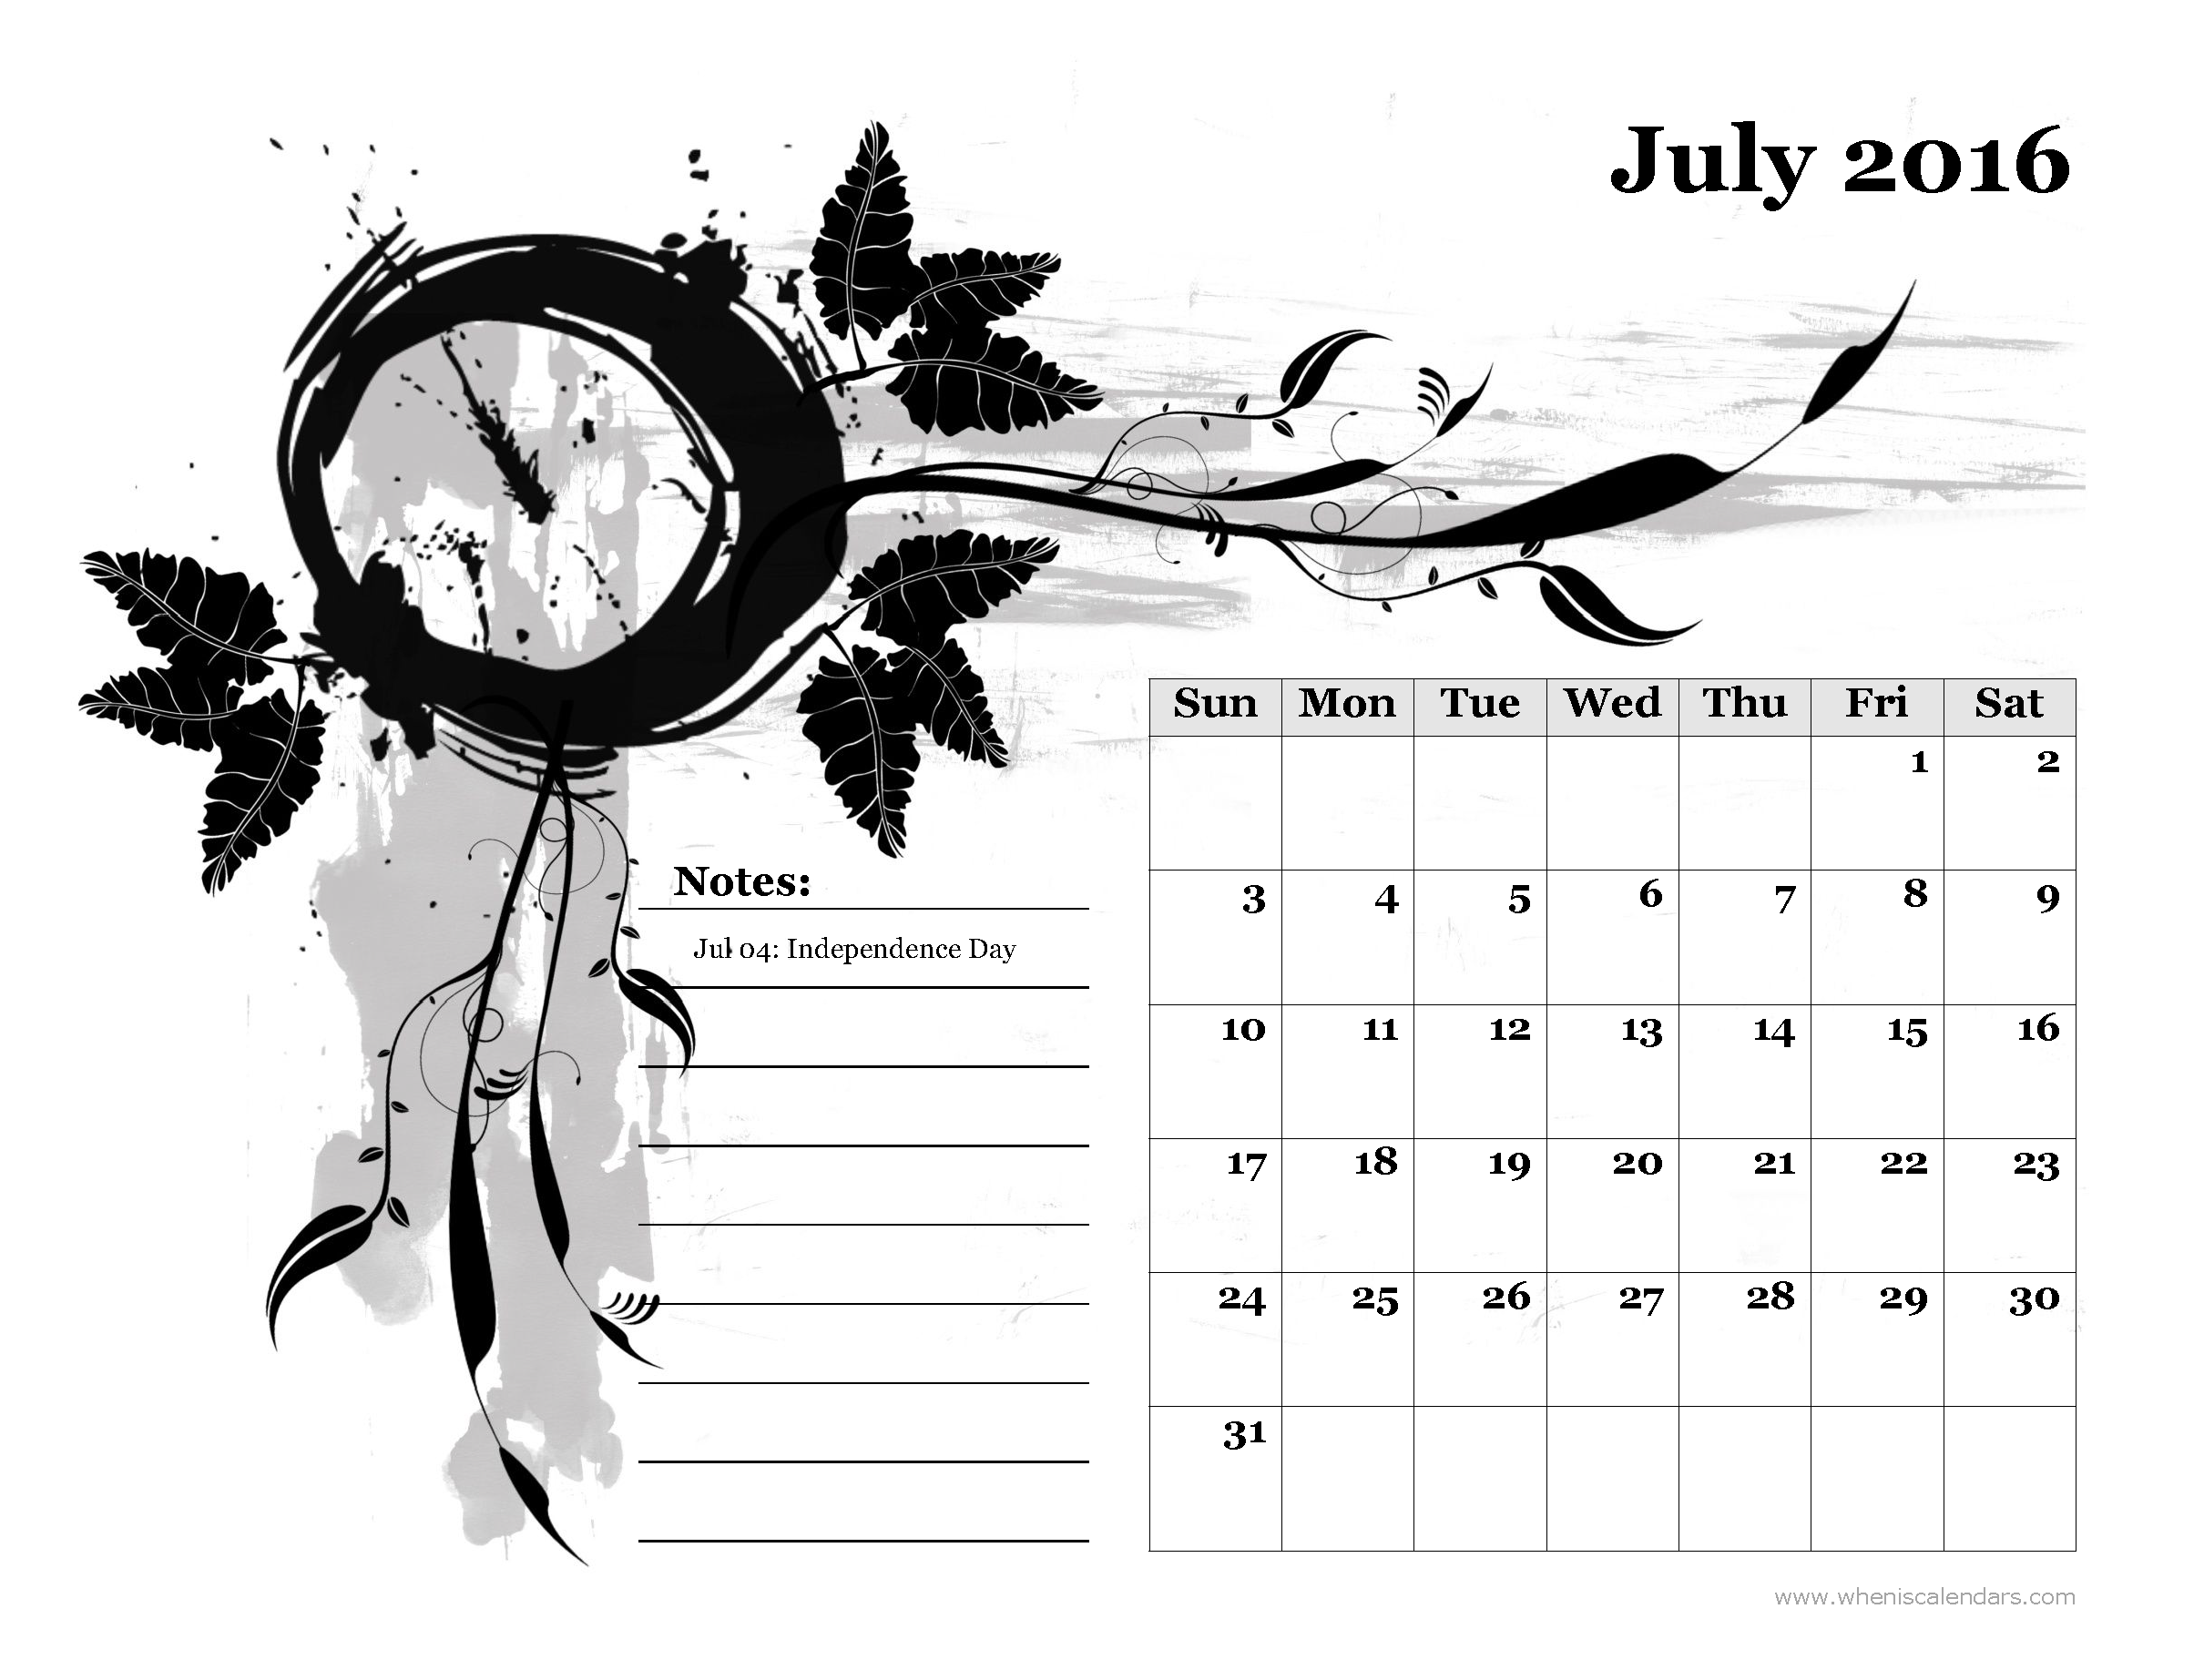 Calendar july 2016 clipart vector free stock July 2016 Calendar Pdf vector free stock